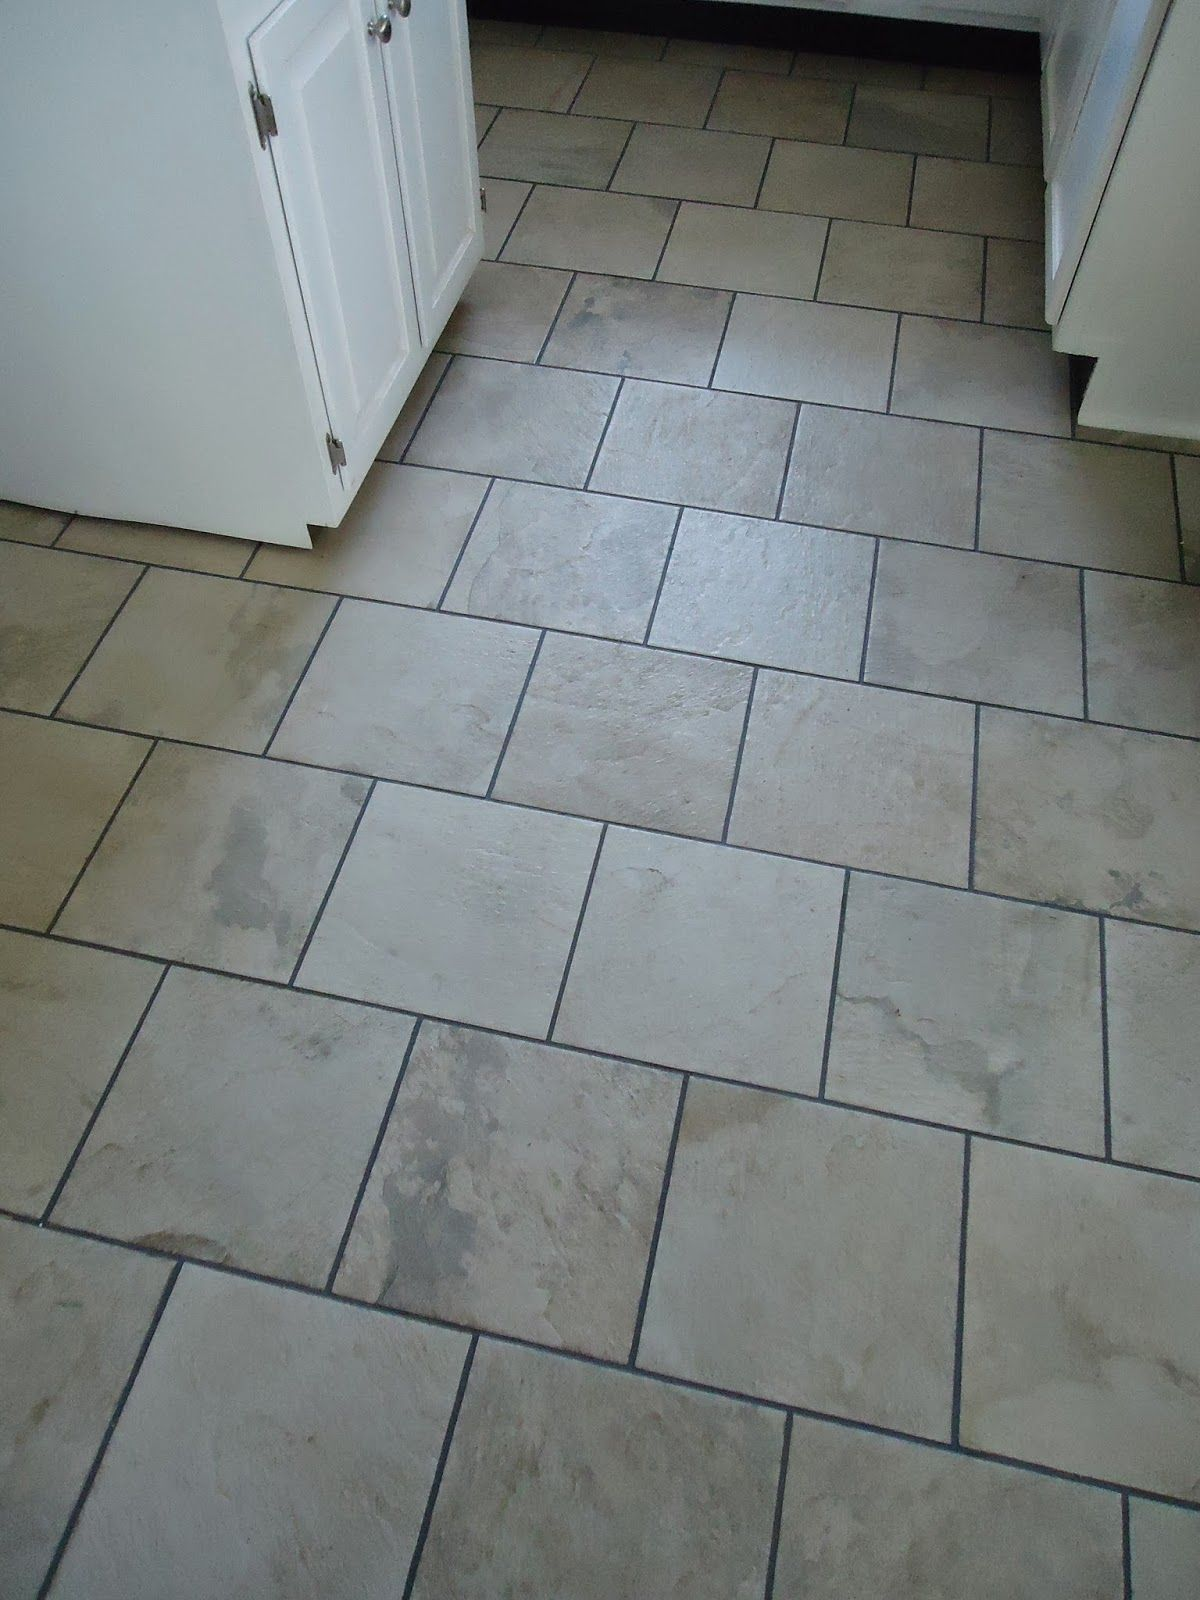 How to change the color of your tile grout without removing the how to change the color of your tile grout without removing the grout quick dailygadgetfo Gallery